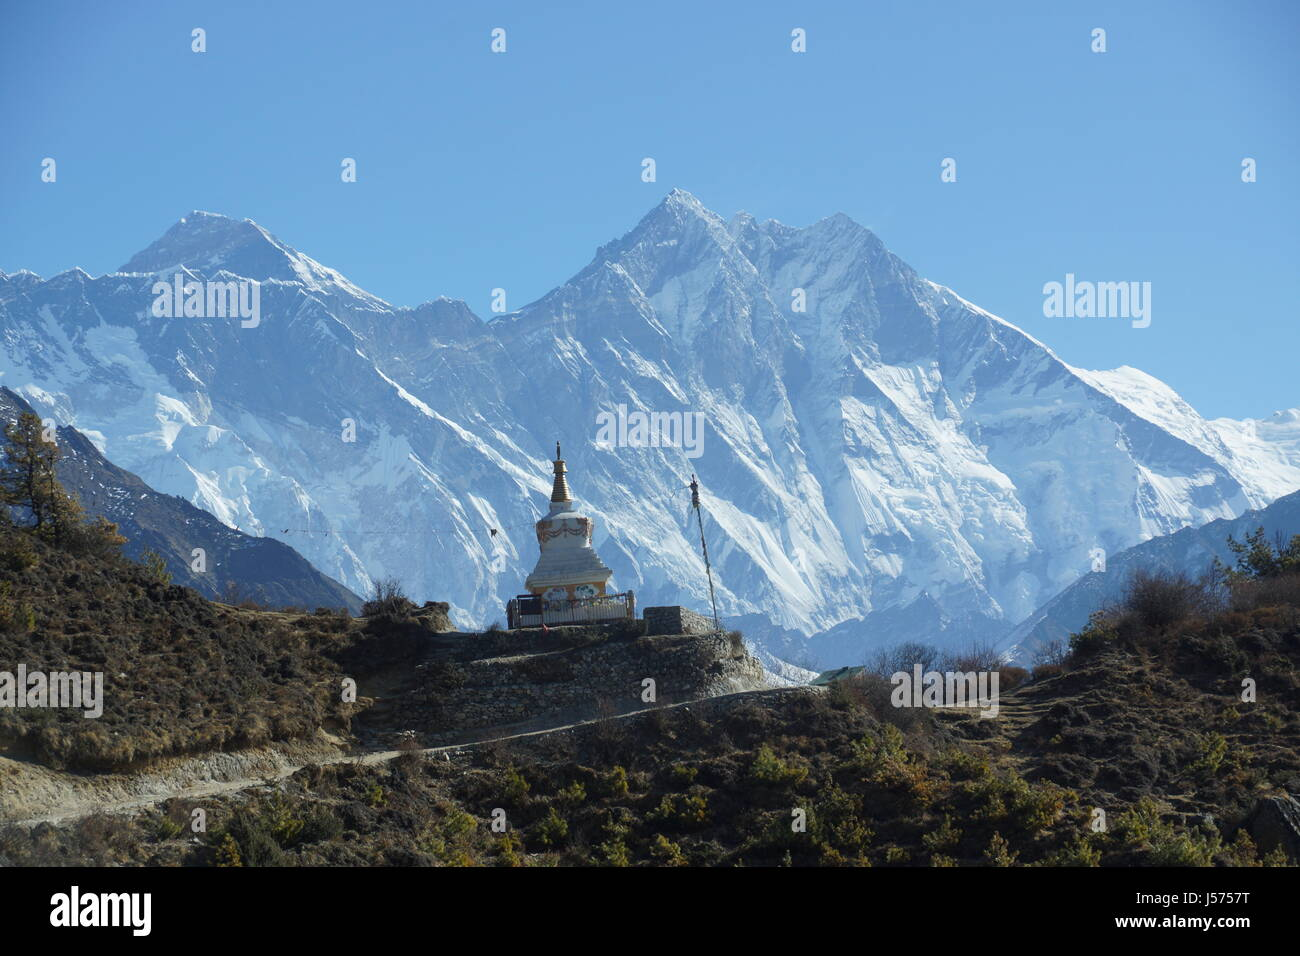 Tenzing Norgay Memorial chorten near Namche Bazaar, Nepal with Lhotse, Everest and Nuptse in the background - Stock Image